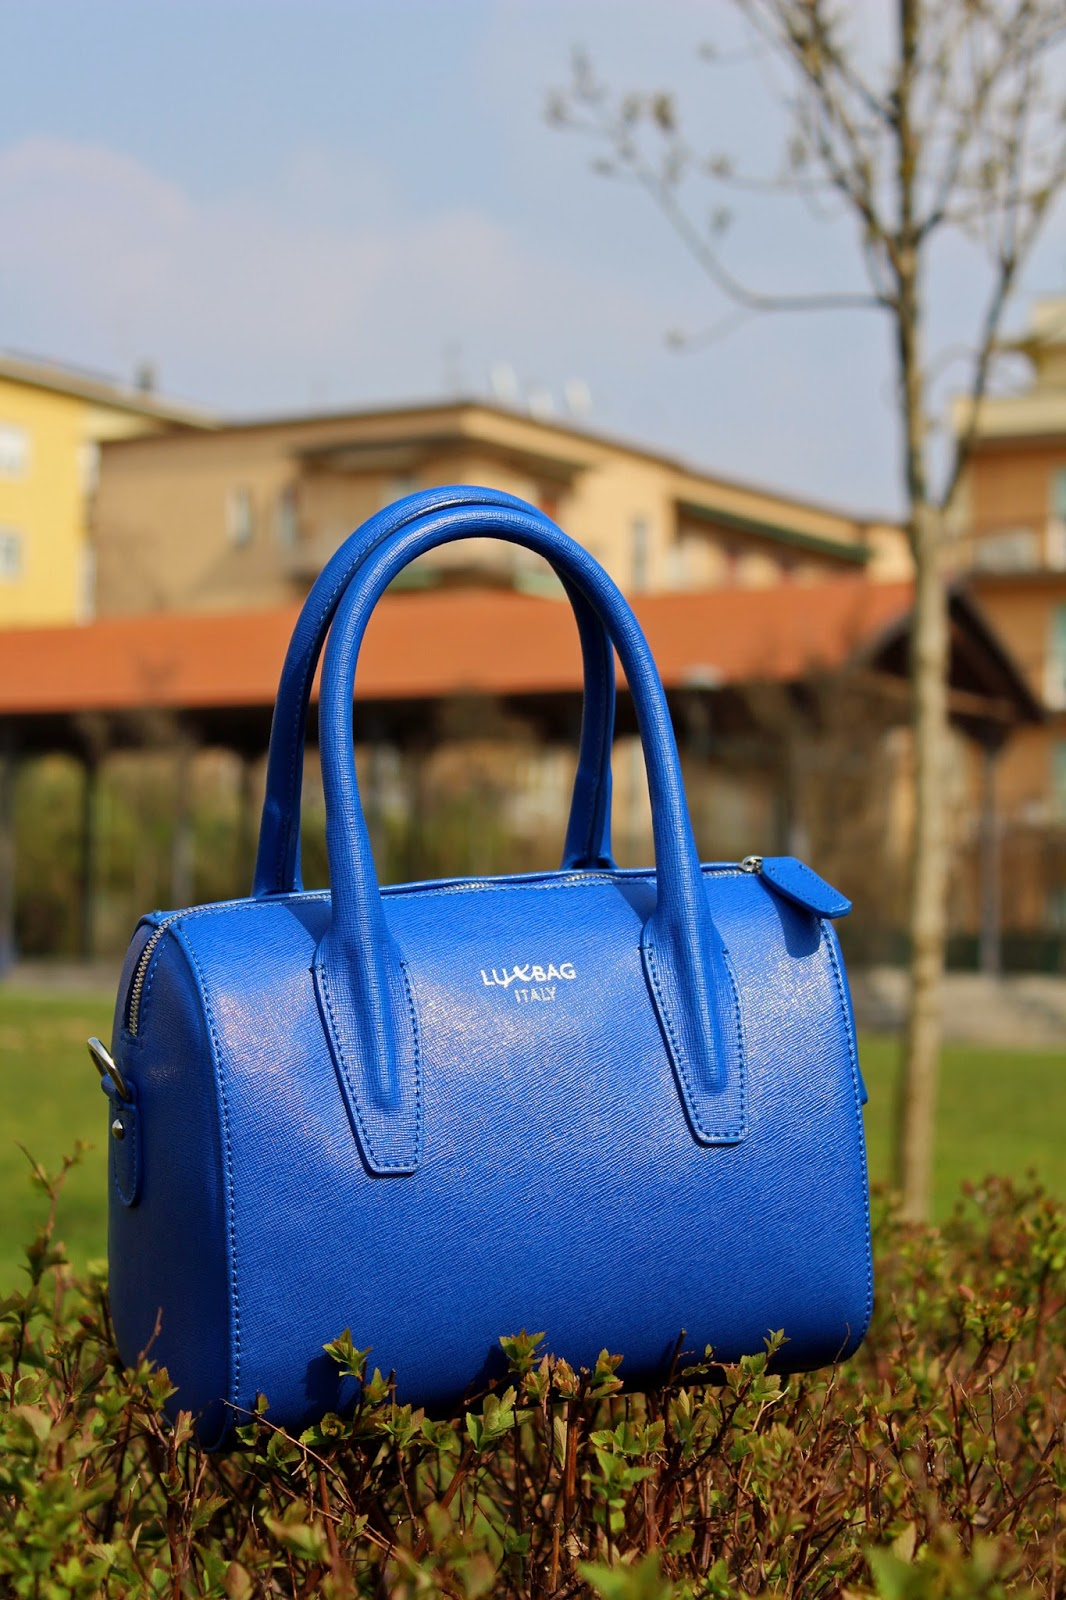 Eniwhere Fashion - Lux Bag - borse Made in Italy